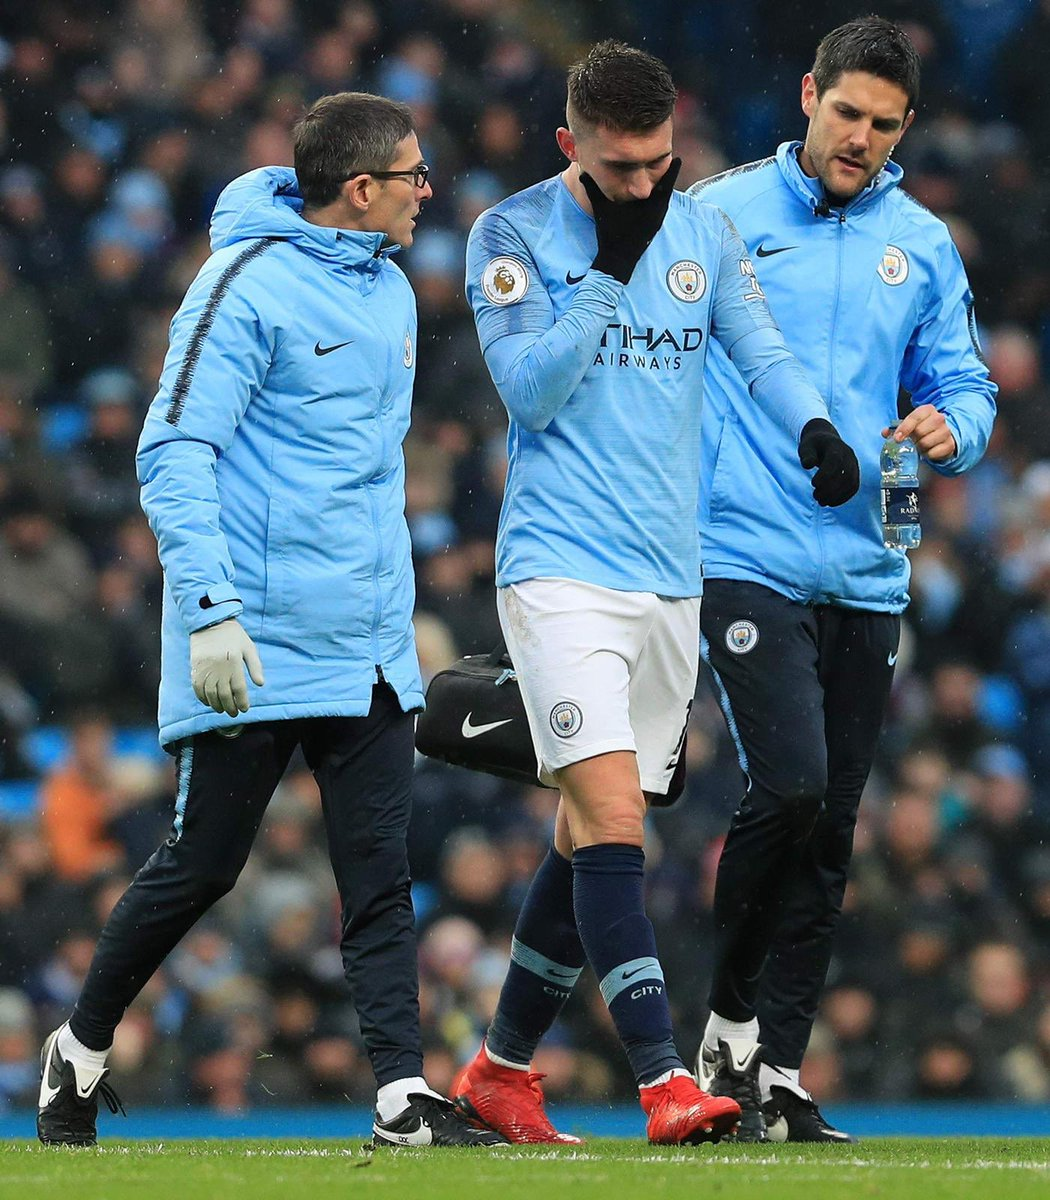 RT @Laporte: All is okey! Thank you so much for all the messages. Well done team! +3💪🏼🦈 #AL14 @ManCity https://t.co/I0X9Wvv5BT